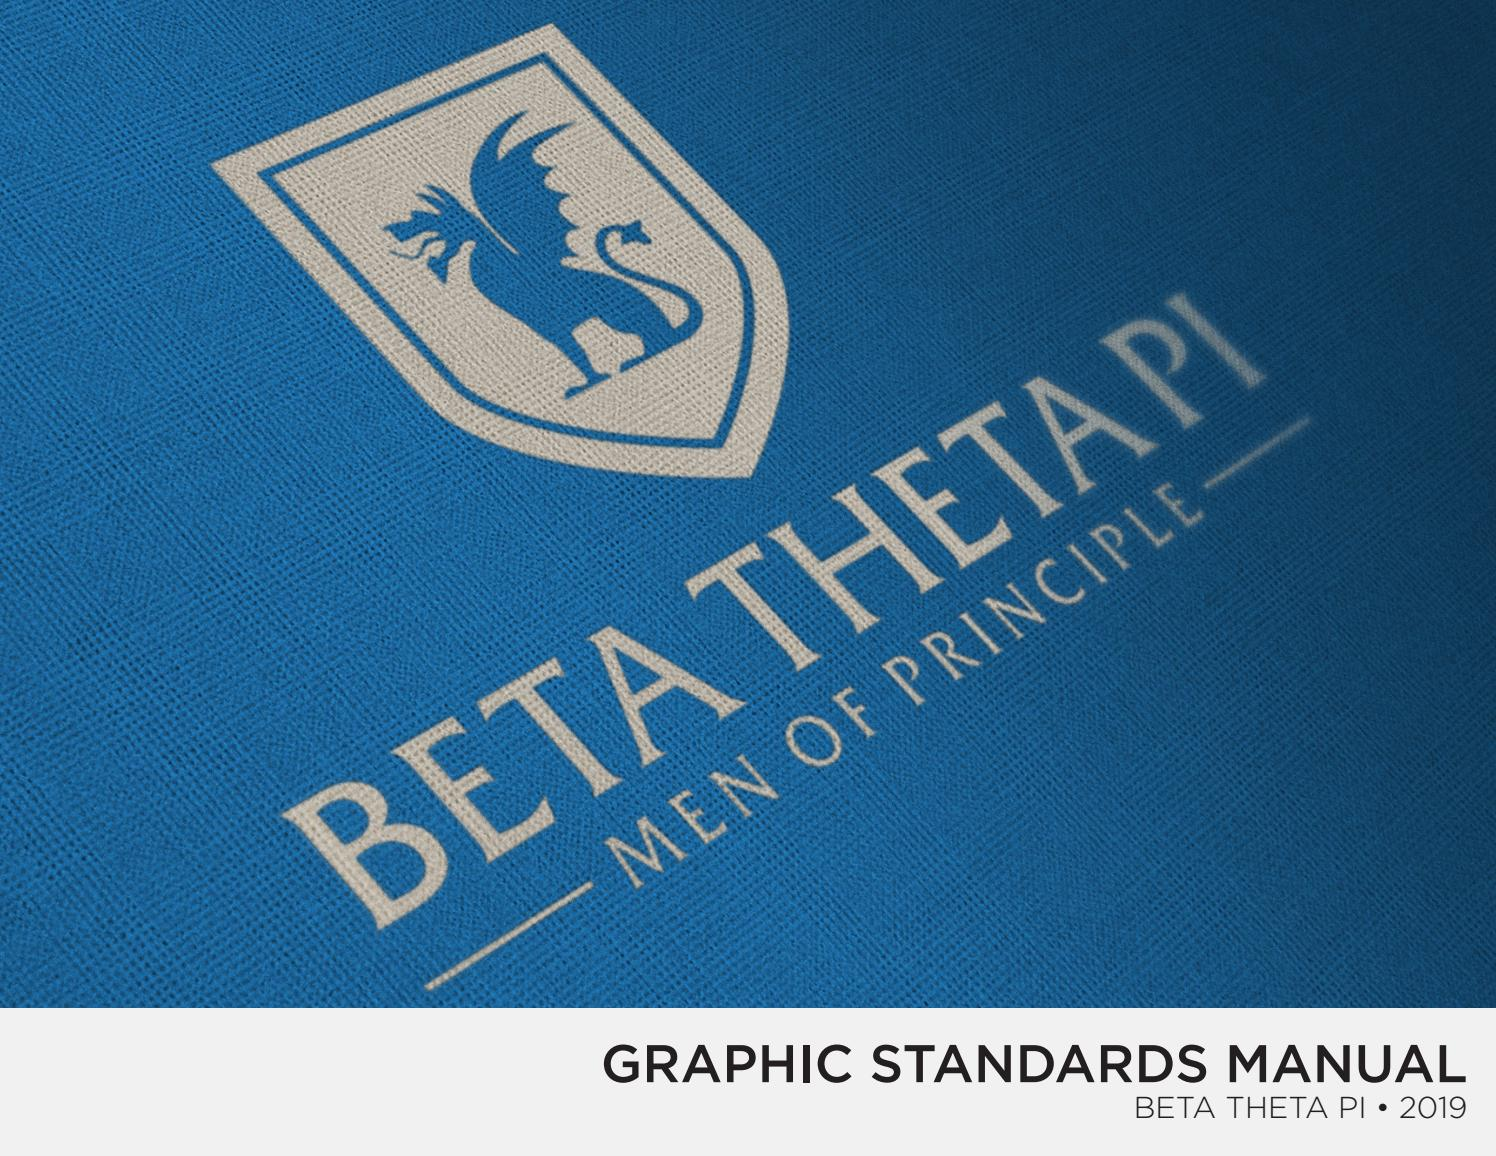 2019 Beta Theta Pi Graphic Standards Manual by Beta Theta Pi